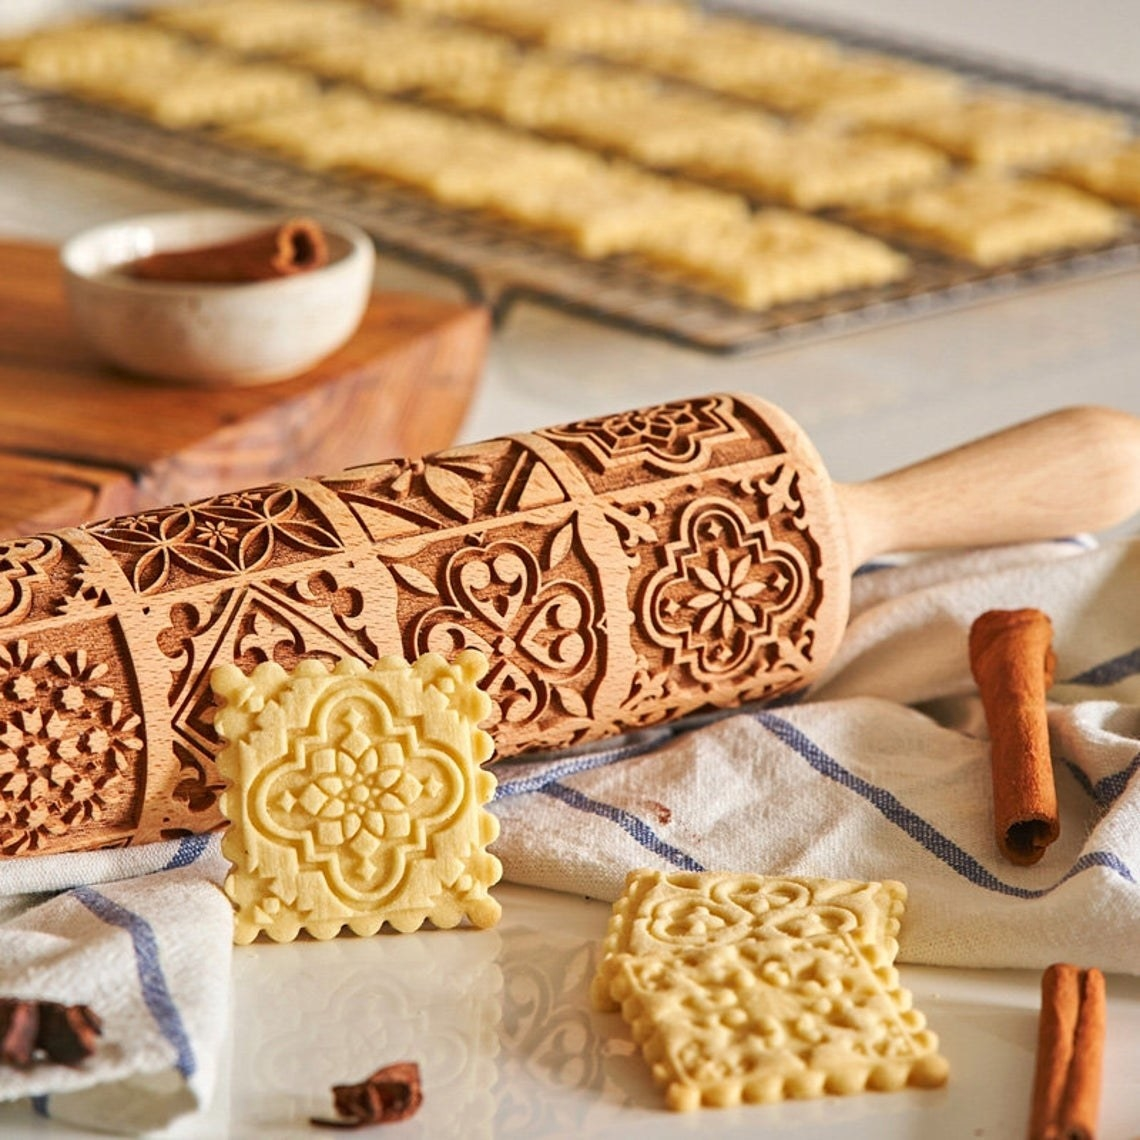 Square butter cookies with intricate vintage patterns made from the rolling pin beside them